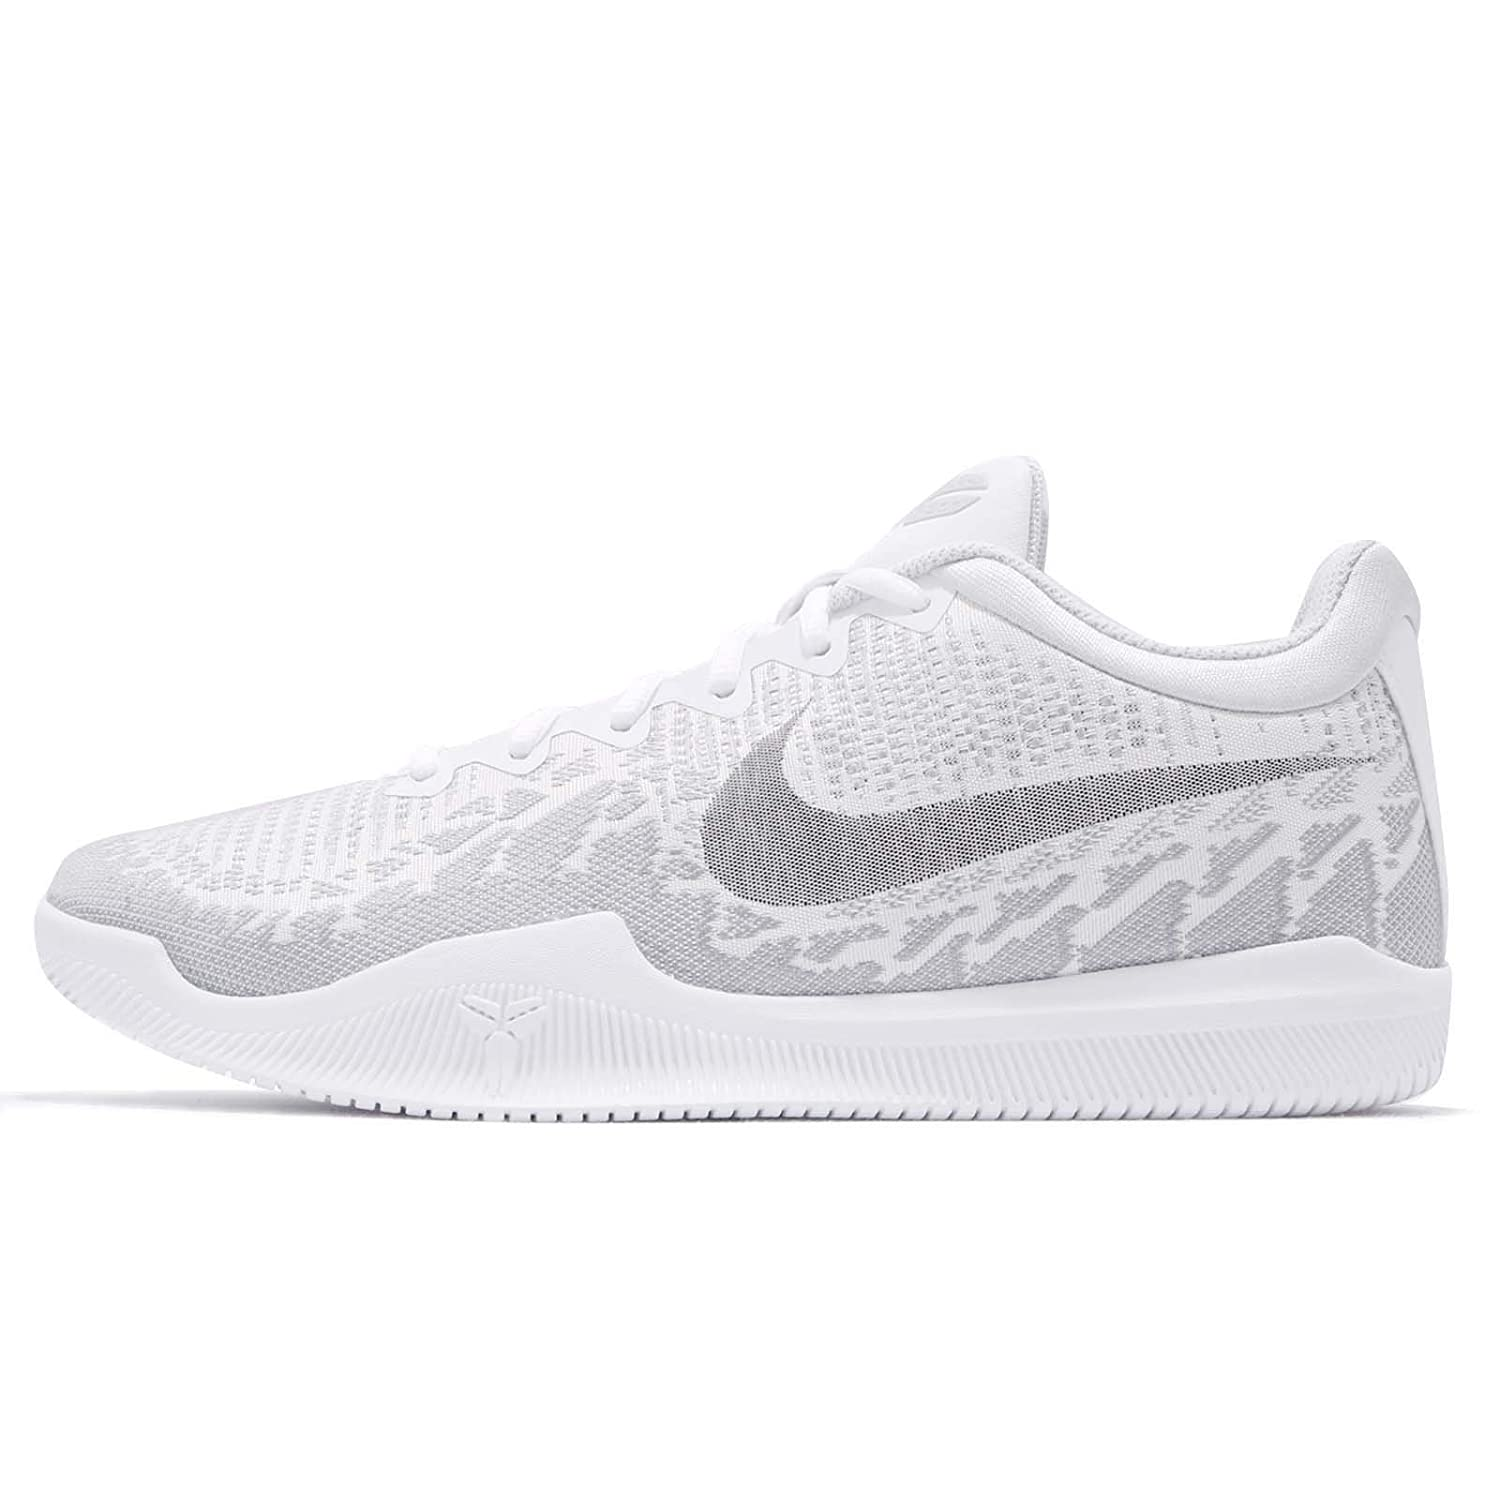 Mr/Ms Nike Men's price Mamba Rage EP, White/Black-Pure Platinum Moderate price Men's Moderate cost Elegant and stable packaging AV13878 4d8352